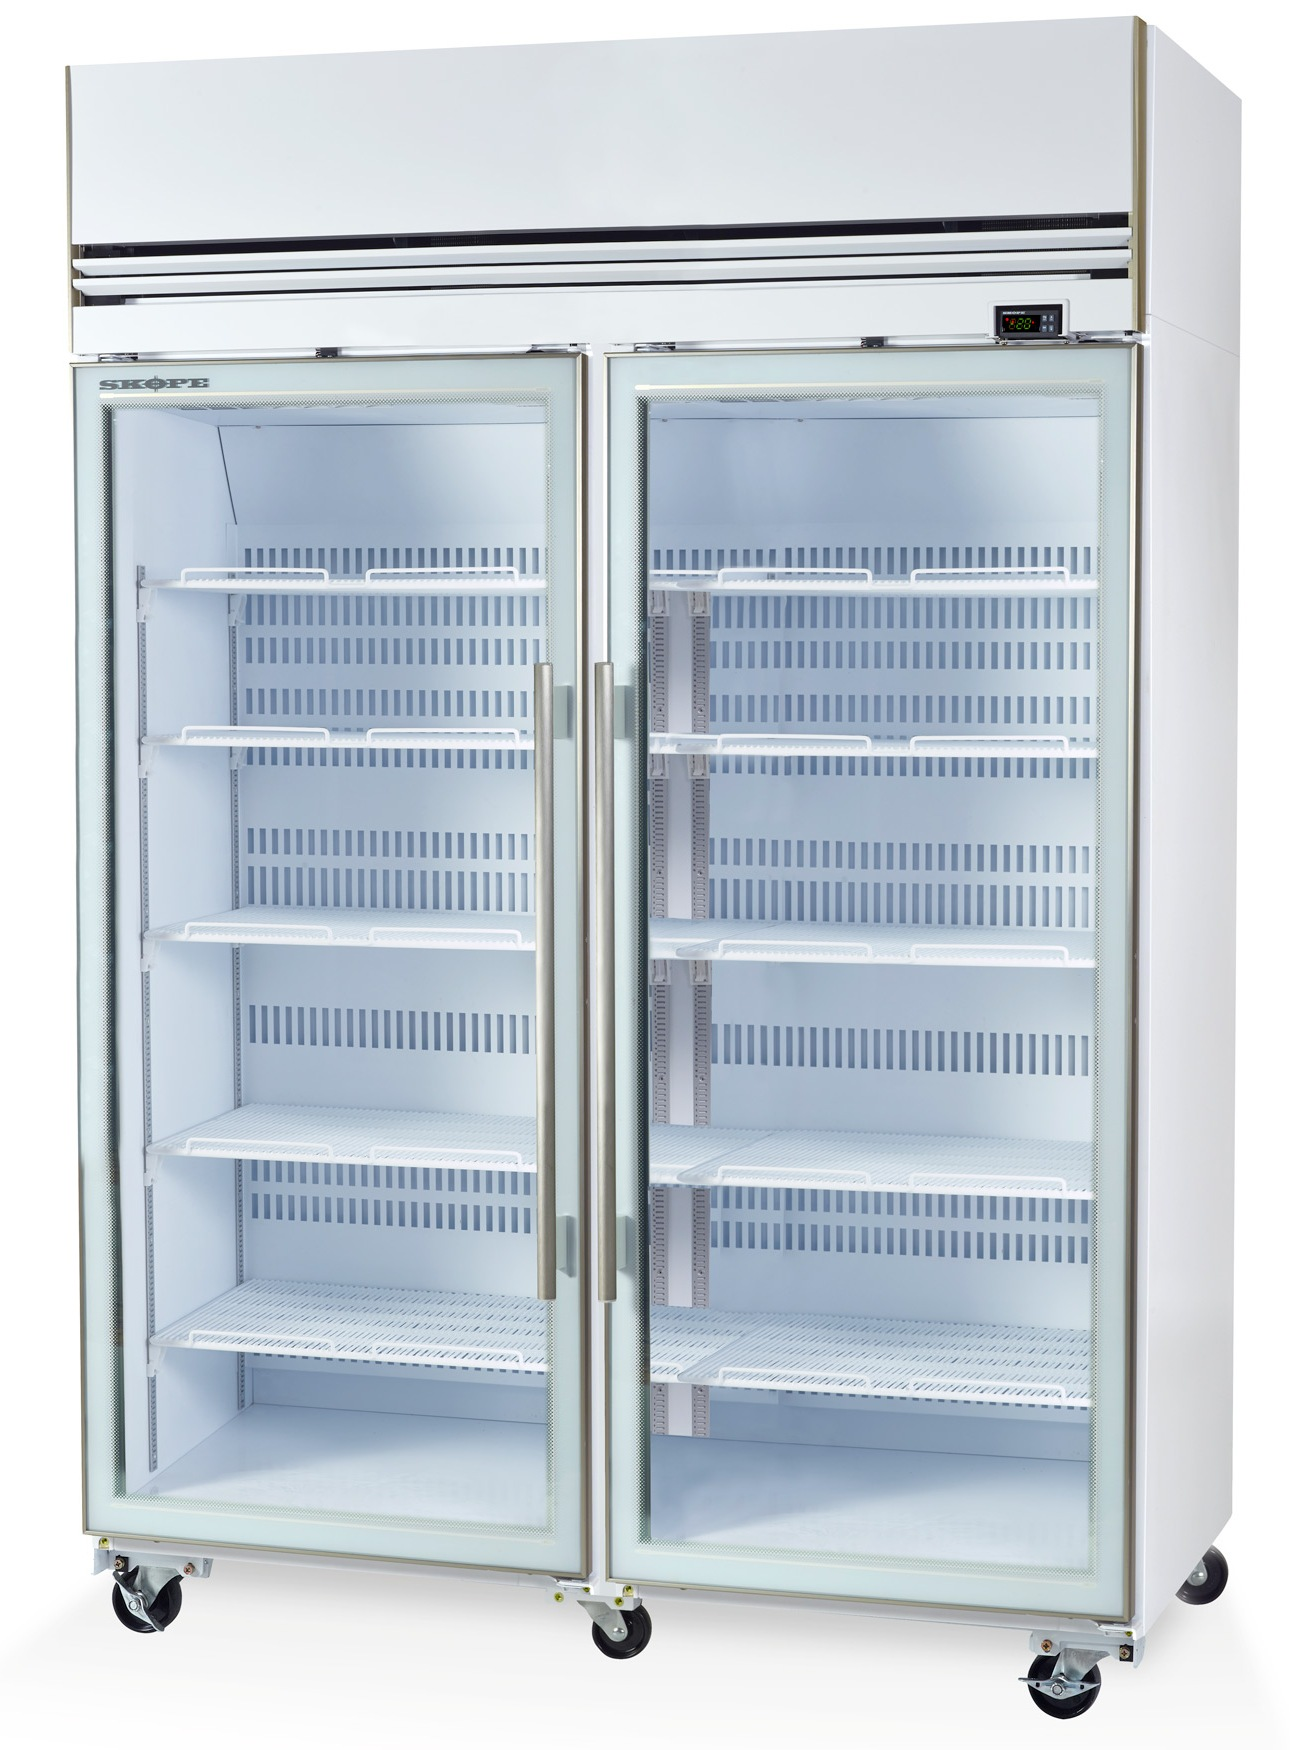 SKOPE VF1300X Upright Freezer